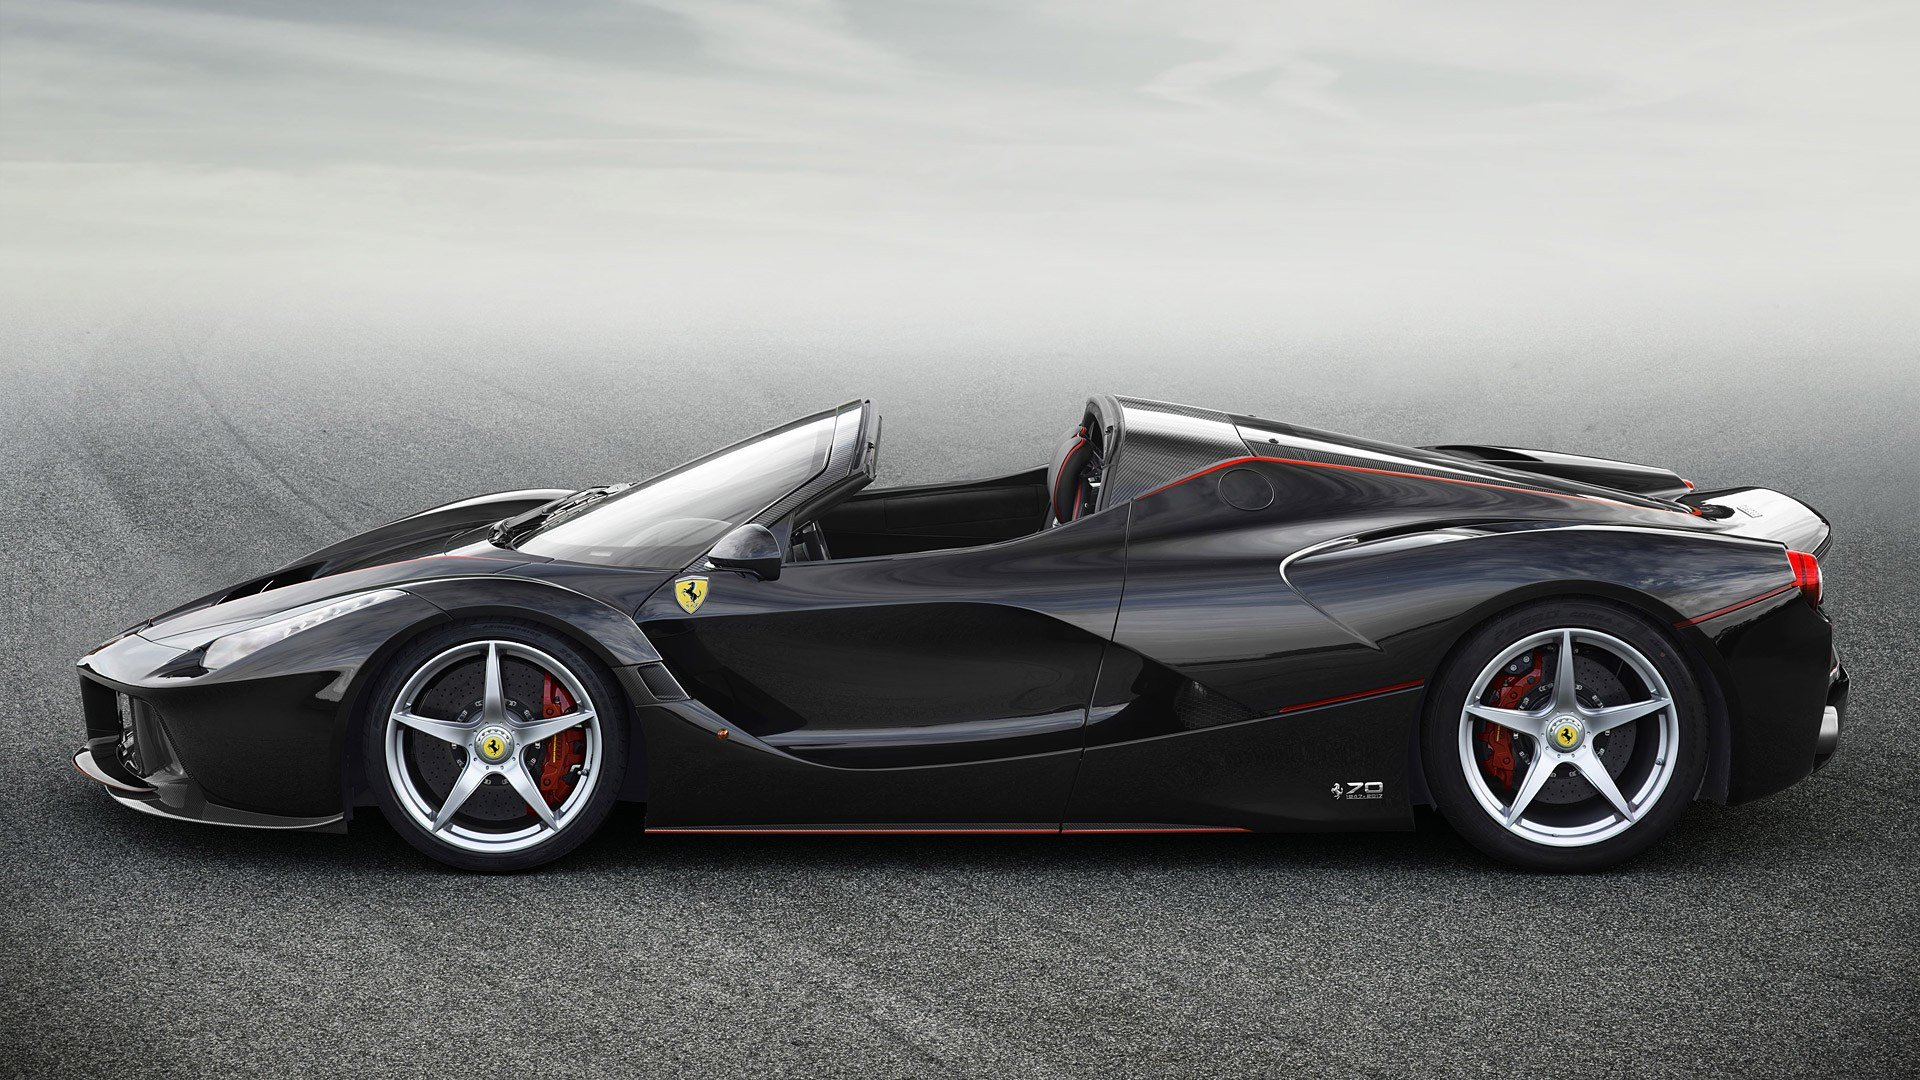 New 2017 Ferrari Laferrari Aperta Wallpapers Hd Images On This Month